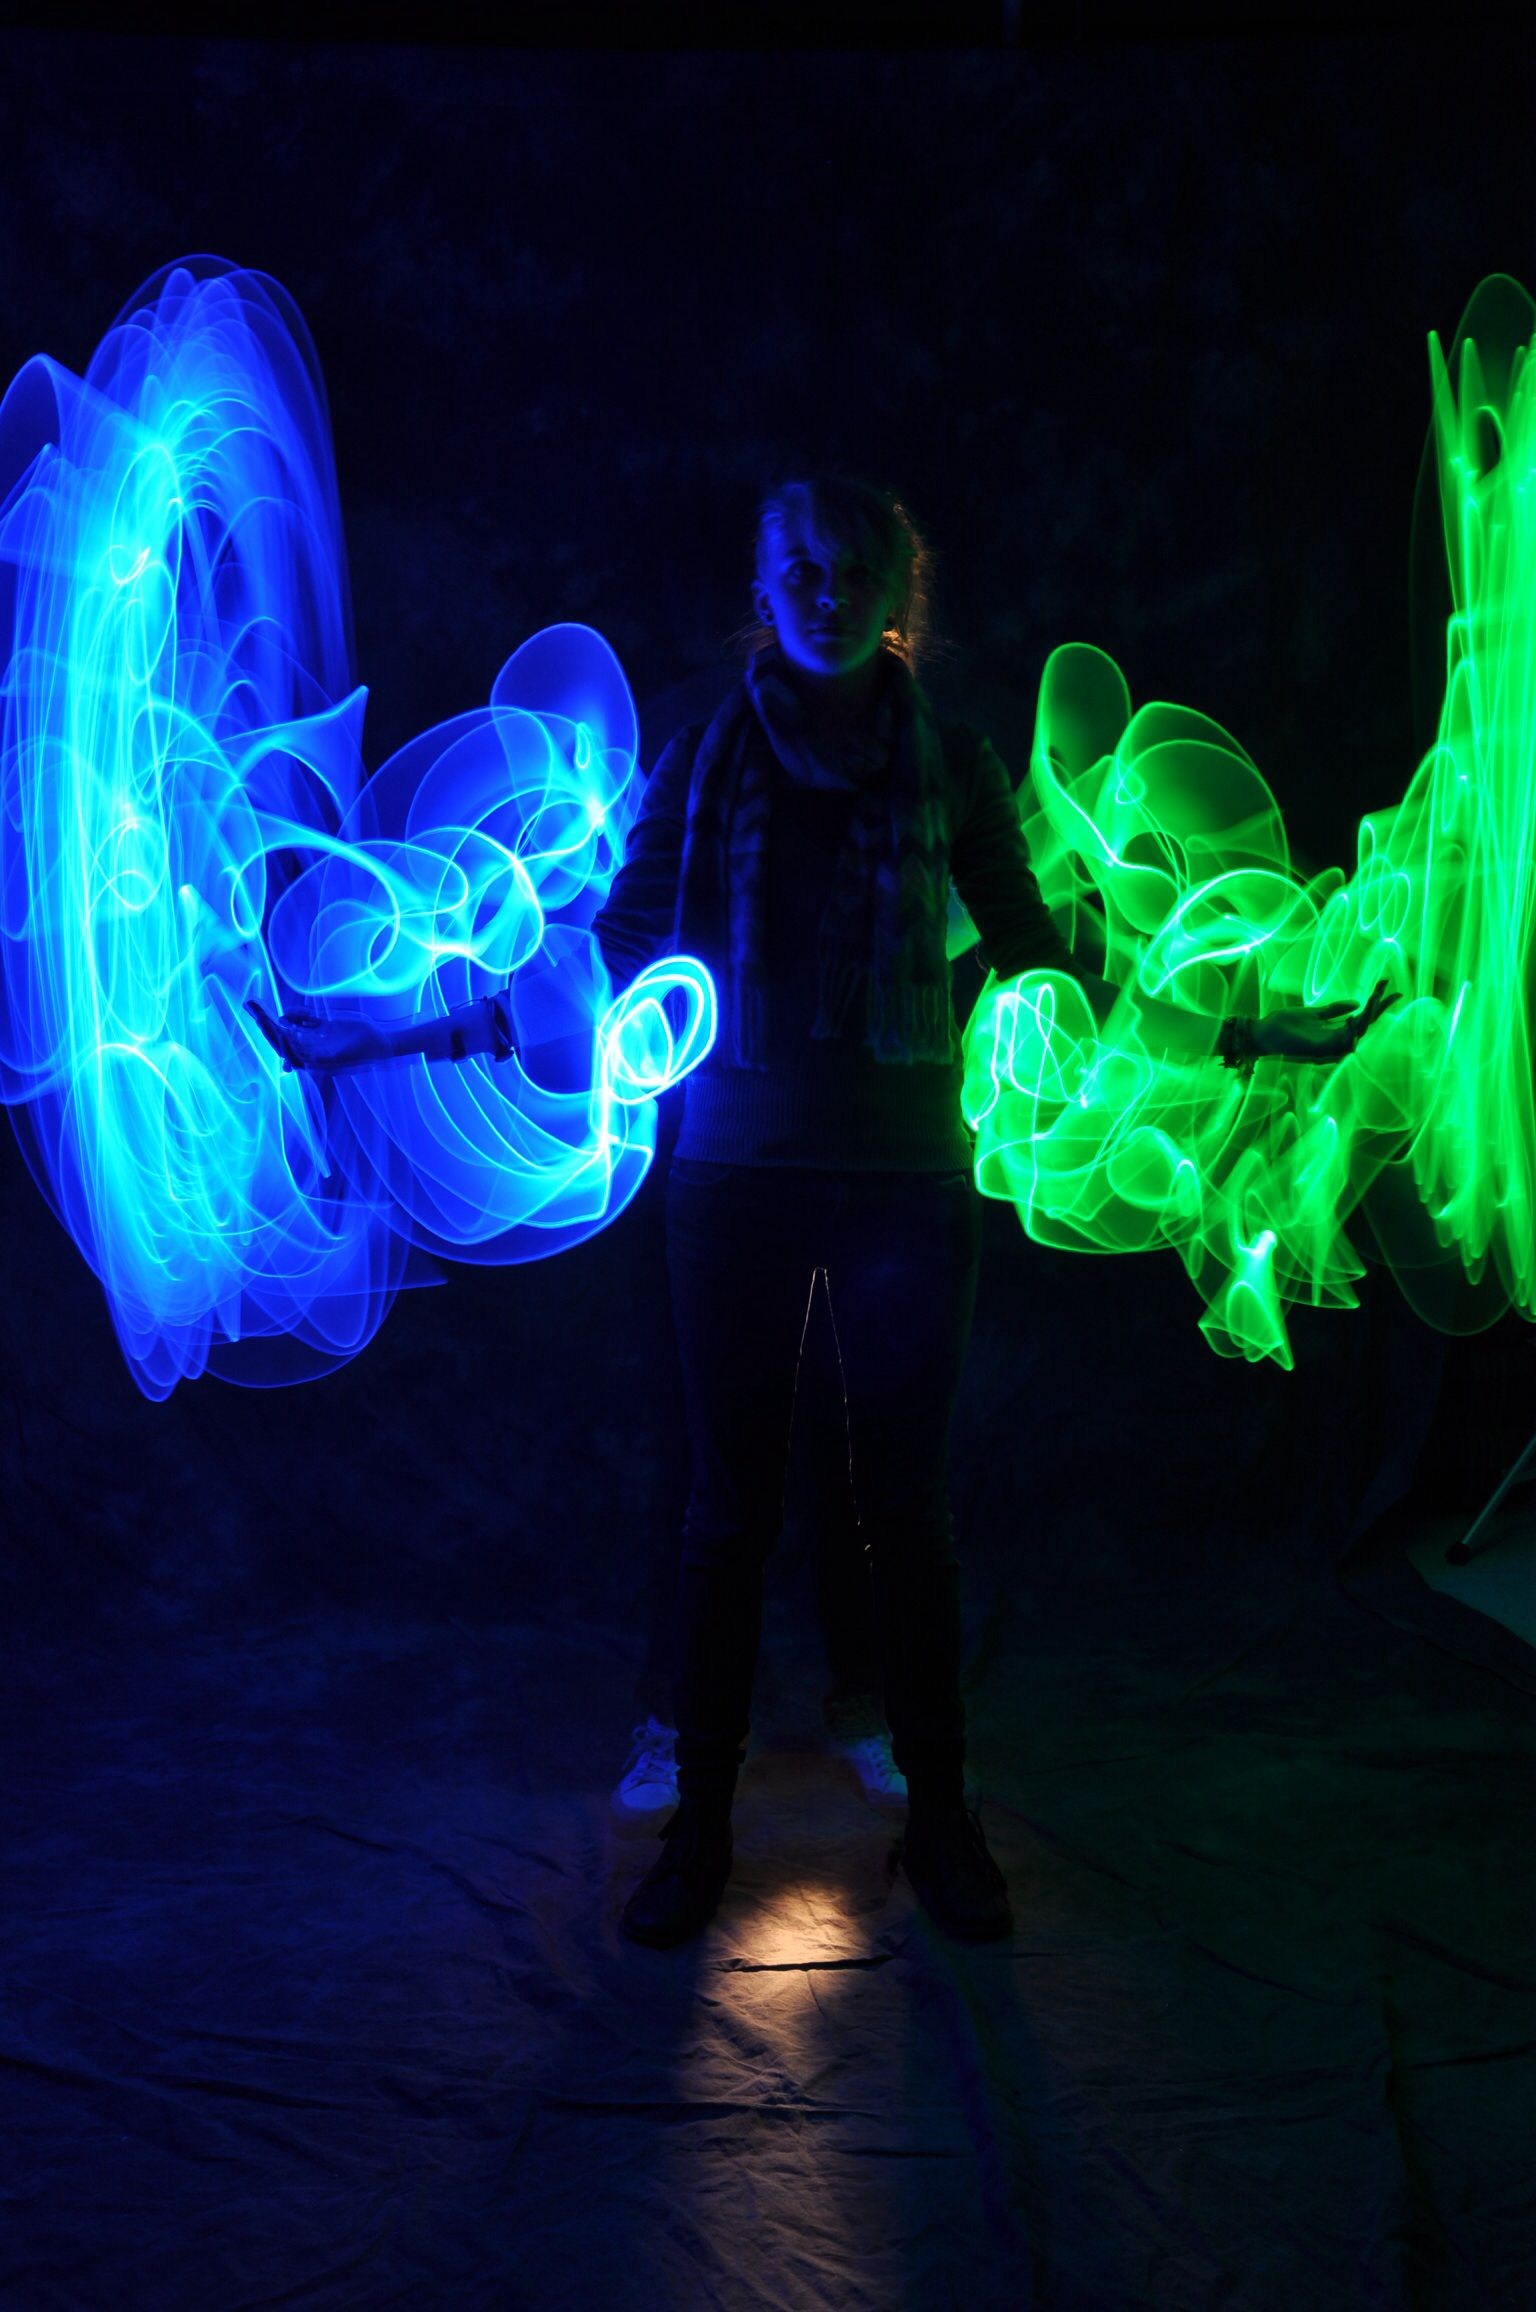 Pin By Jesse James On Art Light Painting Photography Long Exposure Photography Neon Photography